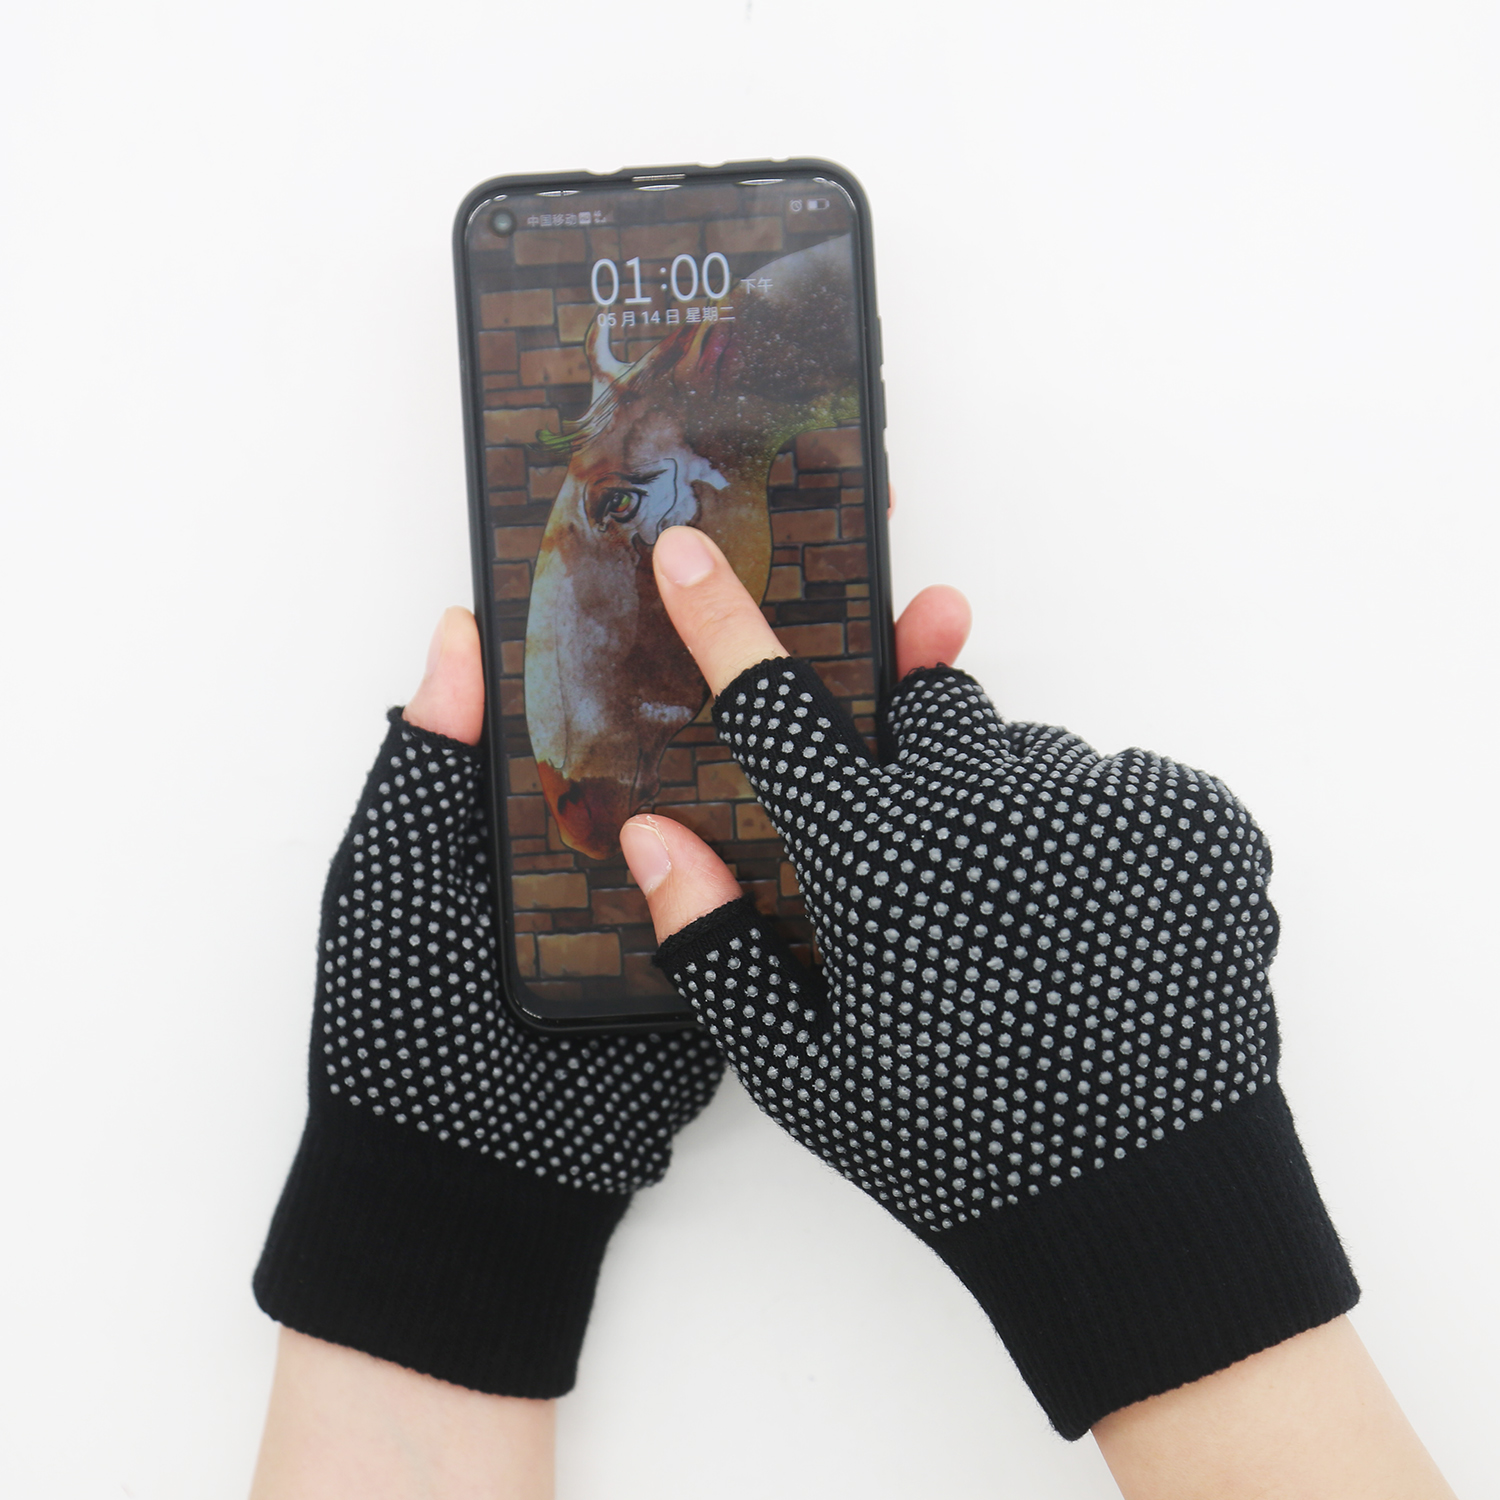 Fingerless Yoga Non-slip Smartphone Touch Screen Gloves